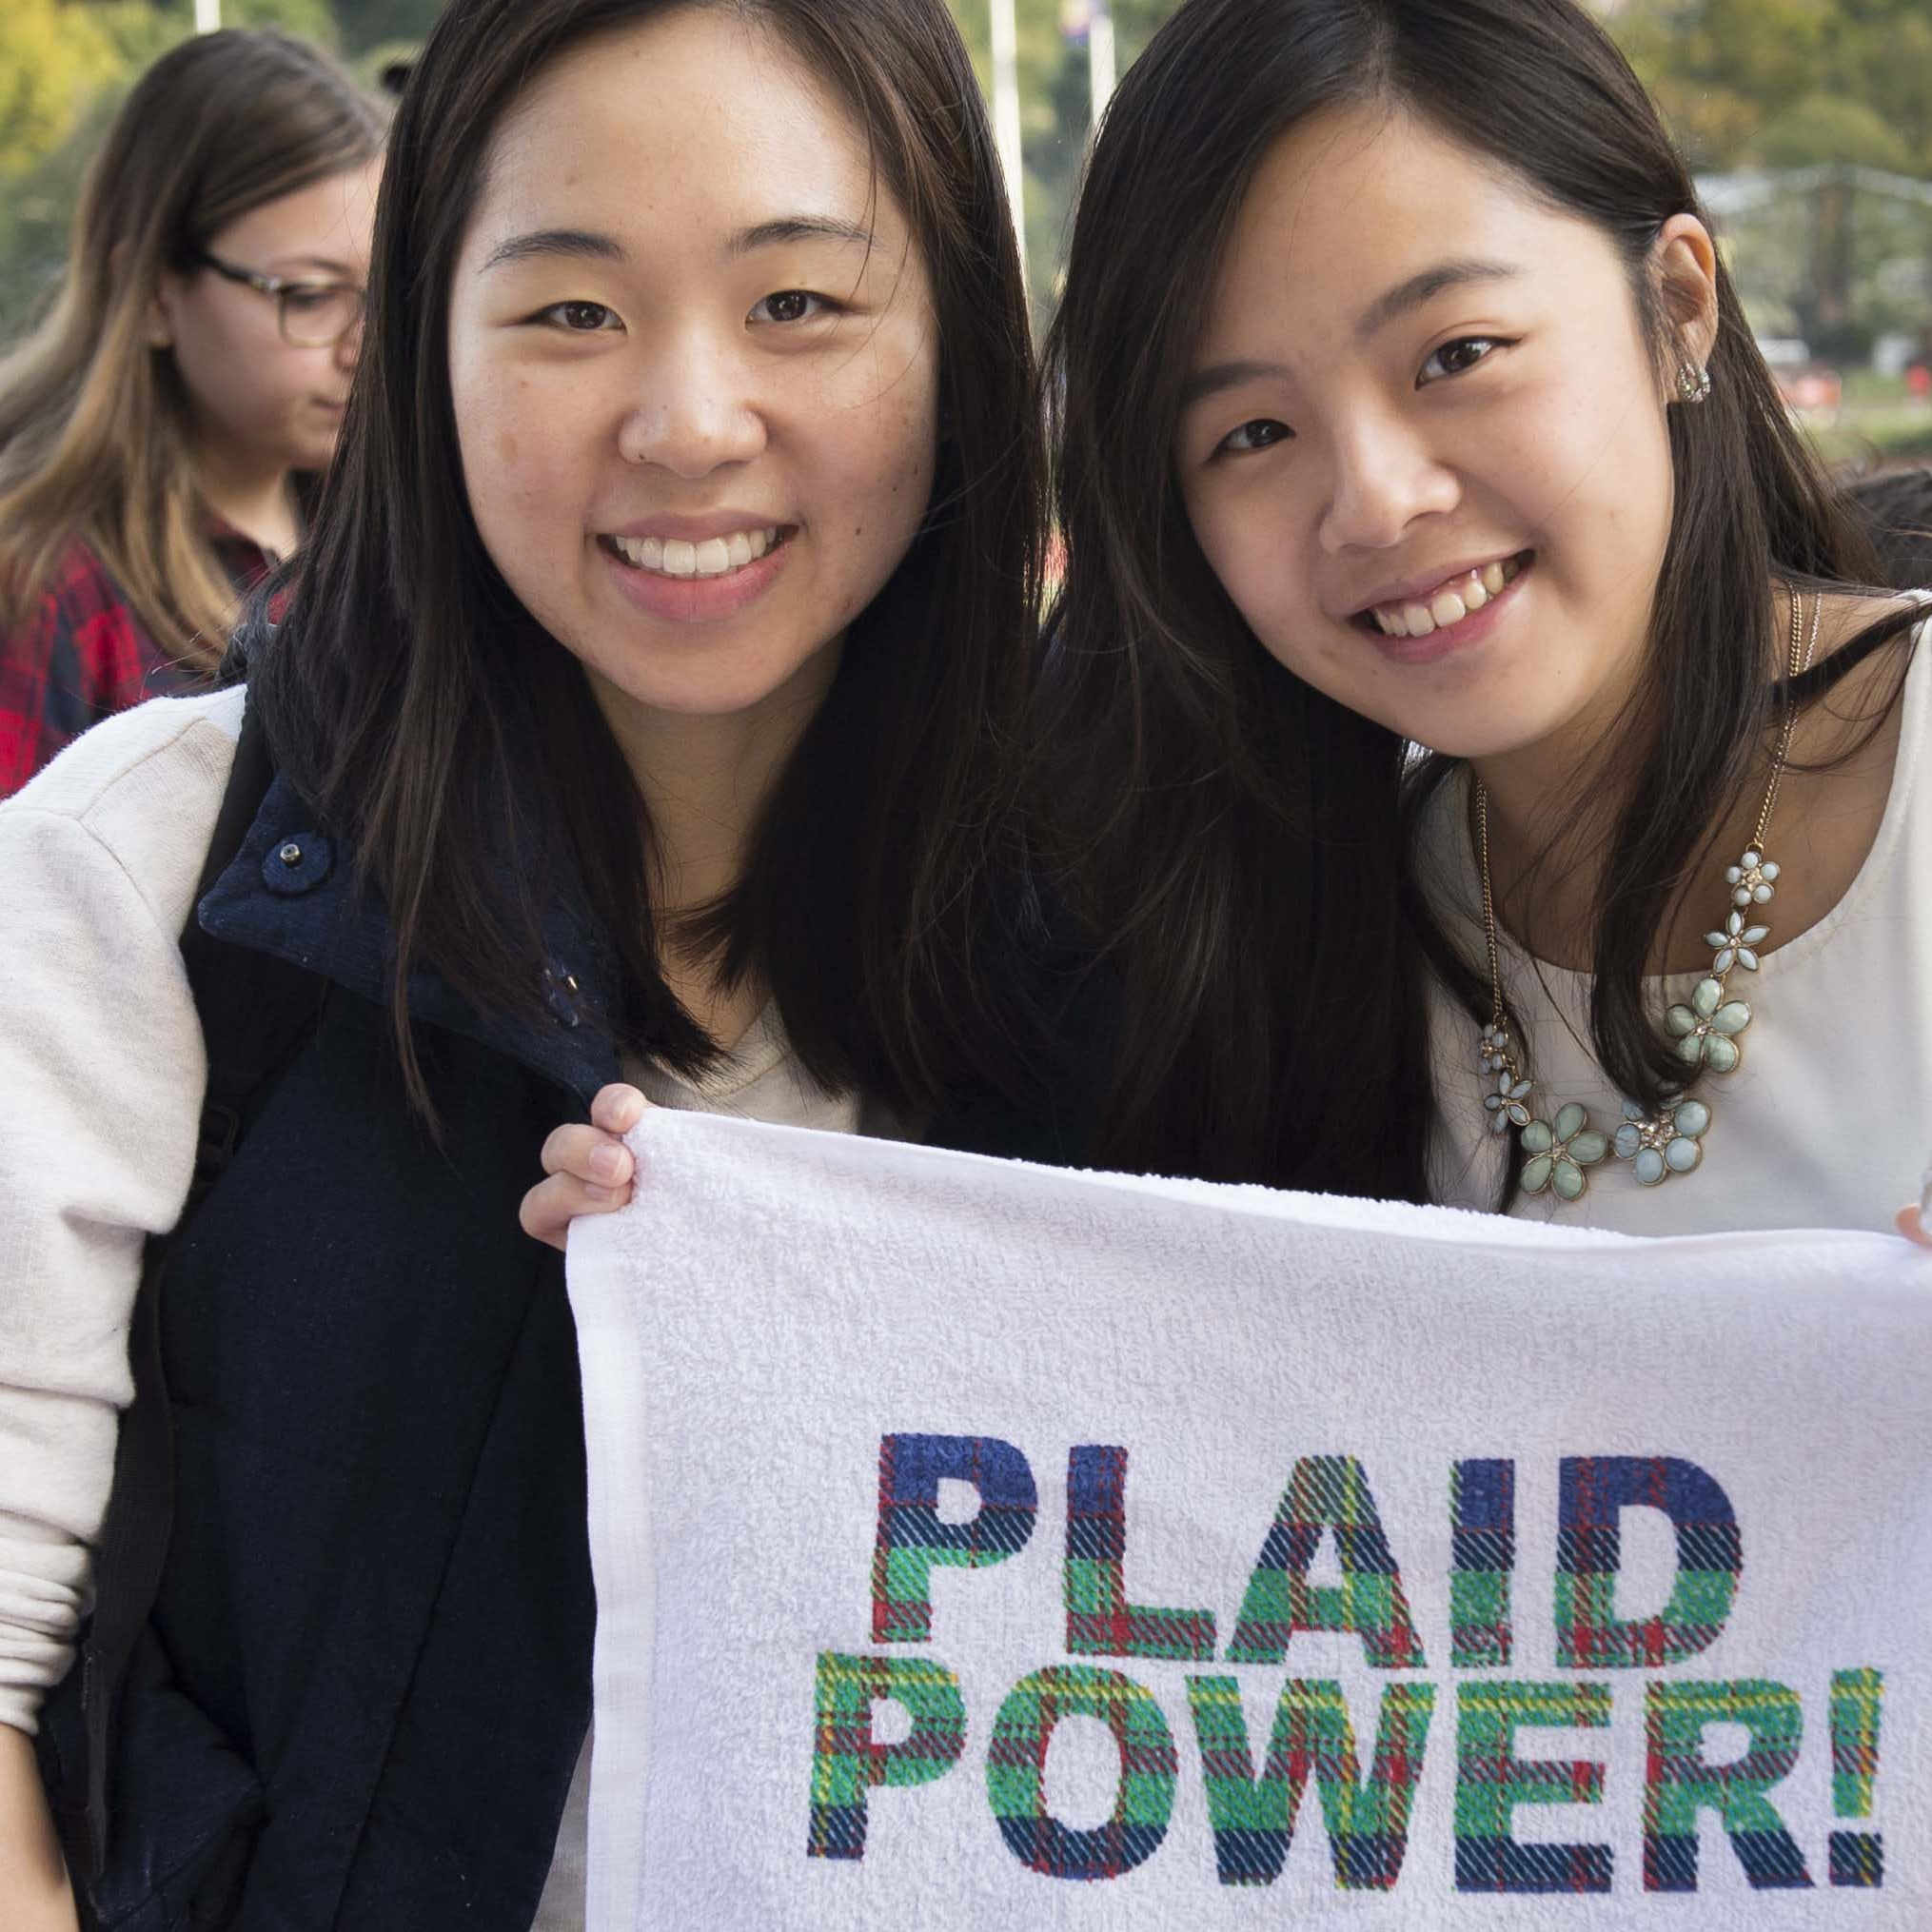 image of Plaid Power towel